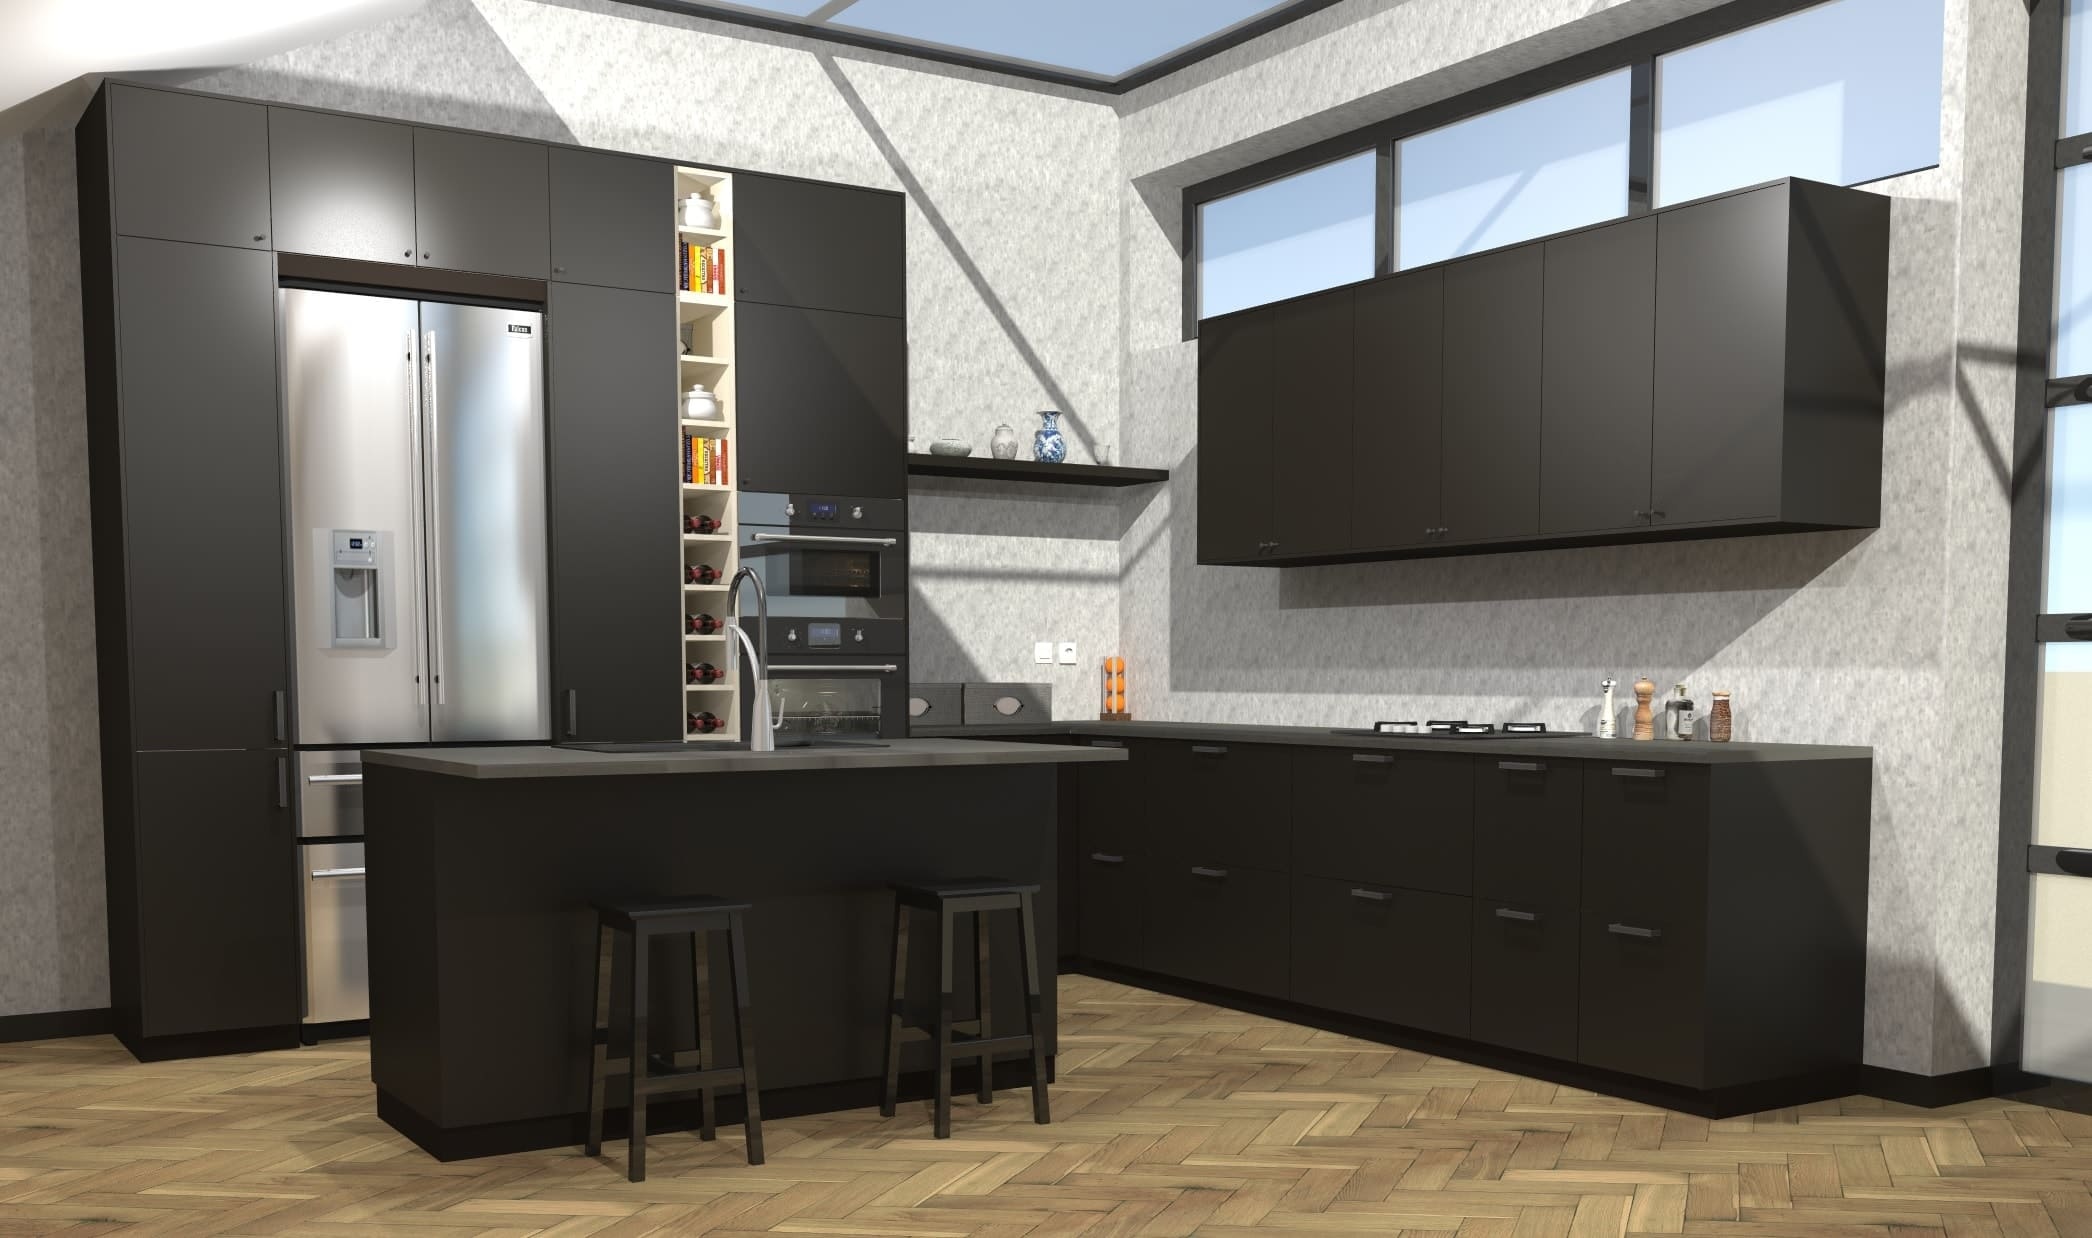 Dynamique Agencement | 3D kitchen software